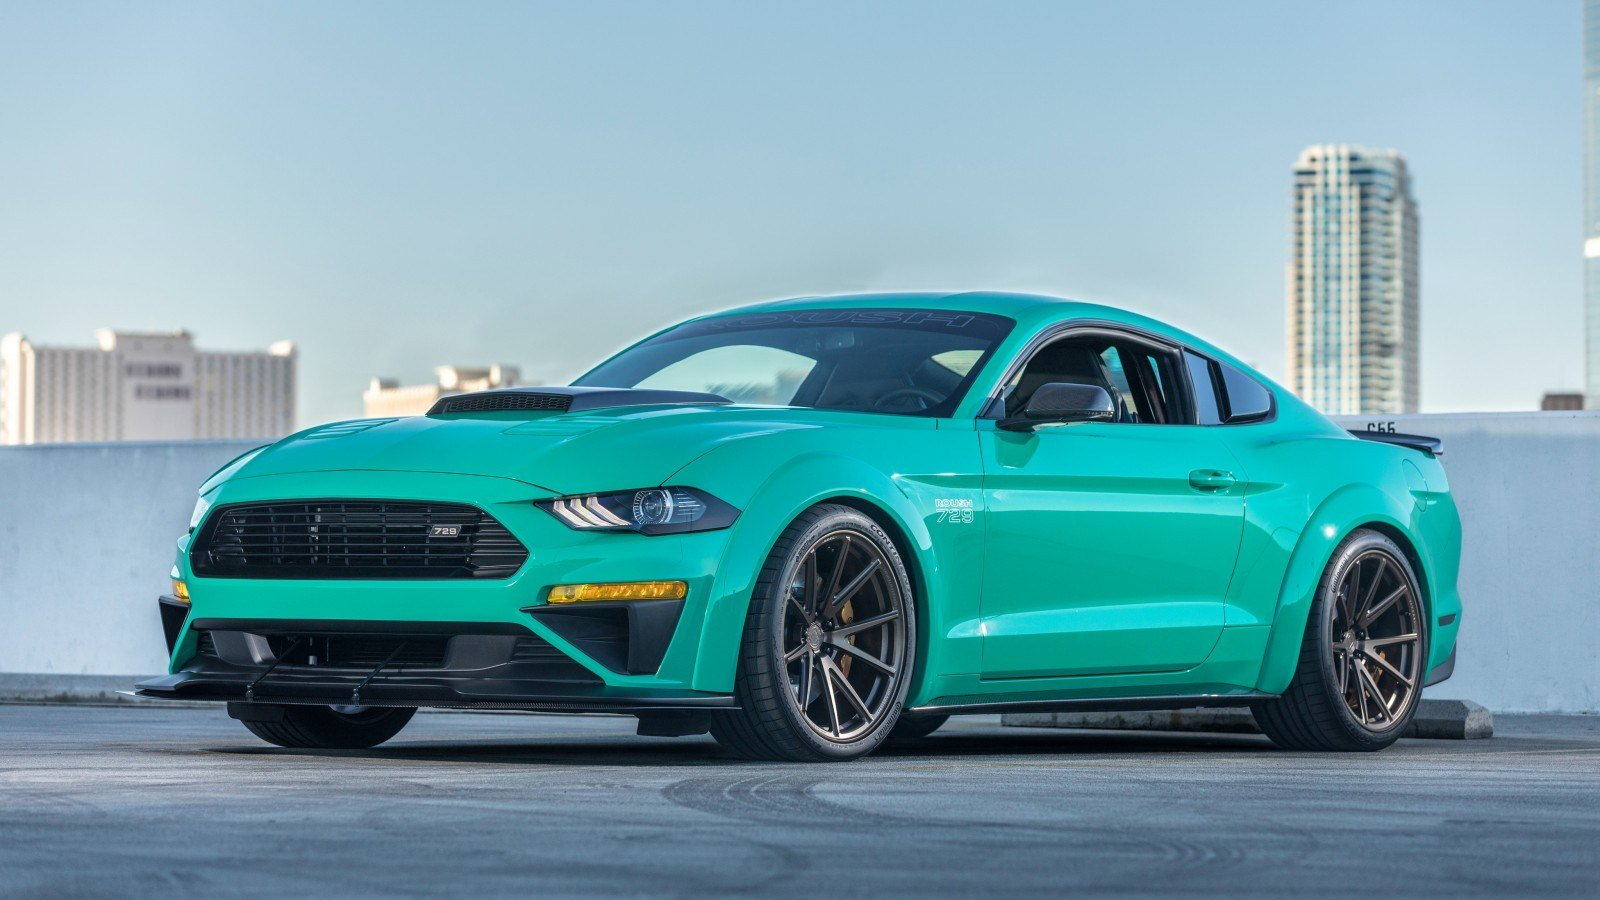 Latest 2018 Roush Ford Mustang 729 4K Wallpaper Hd Car Free Download